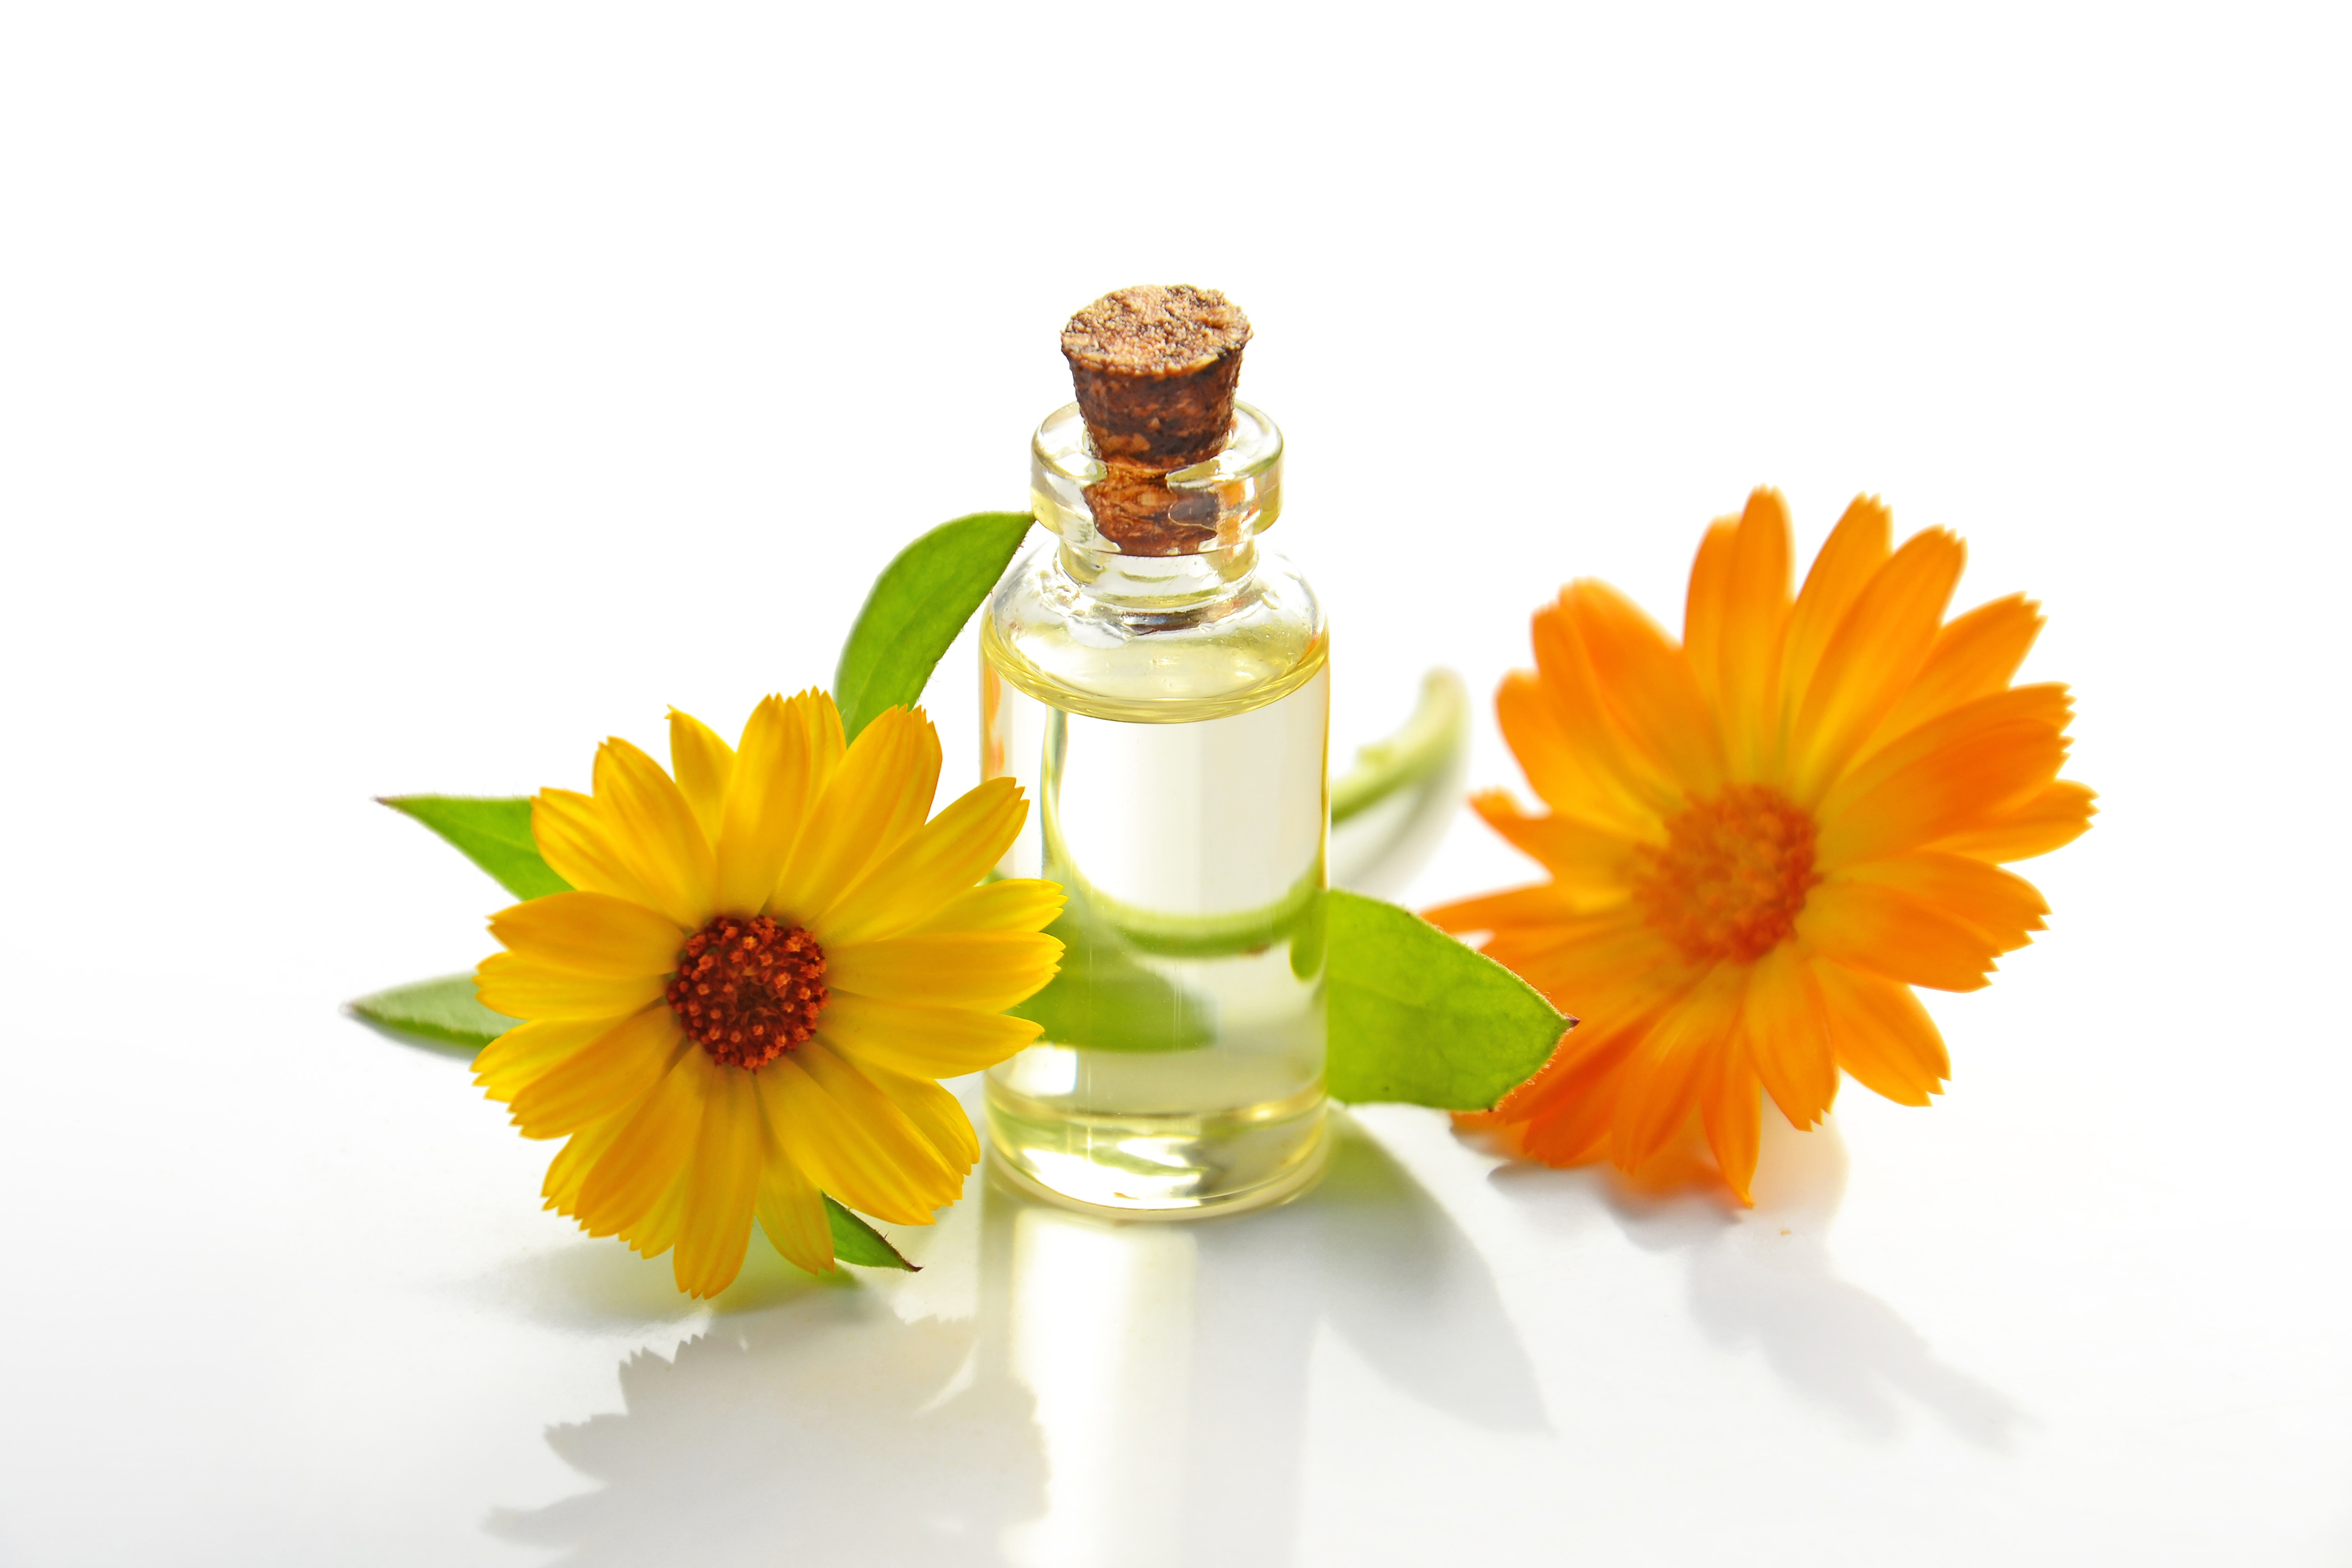 Beauty Oils In the Summer? You Bet!